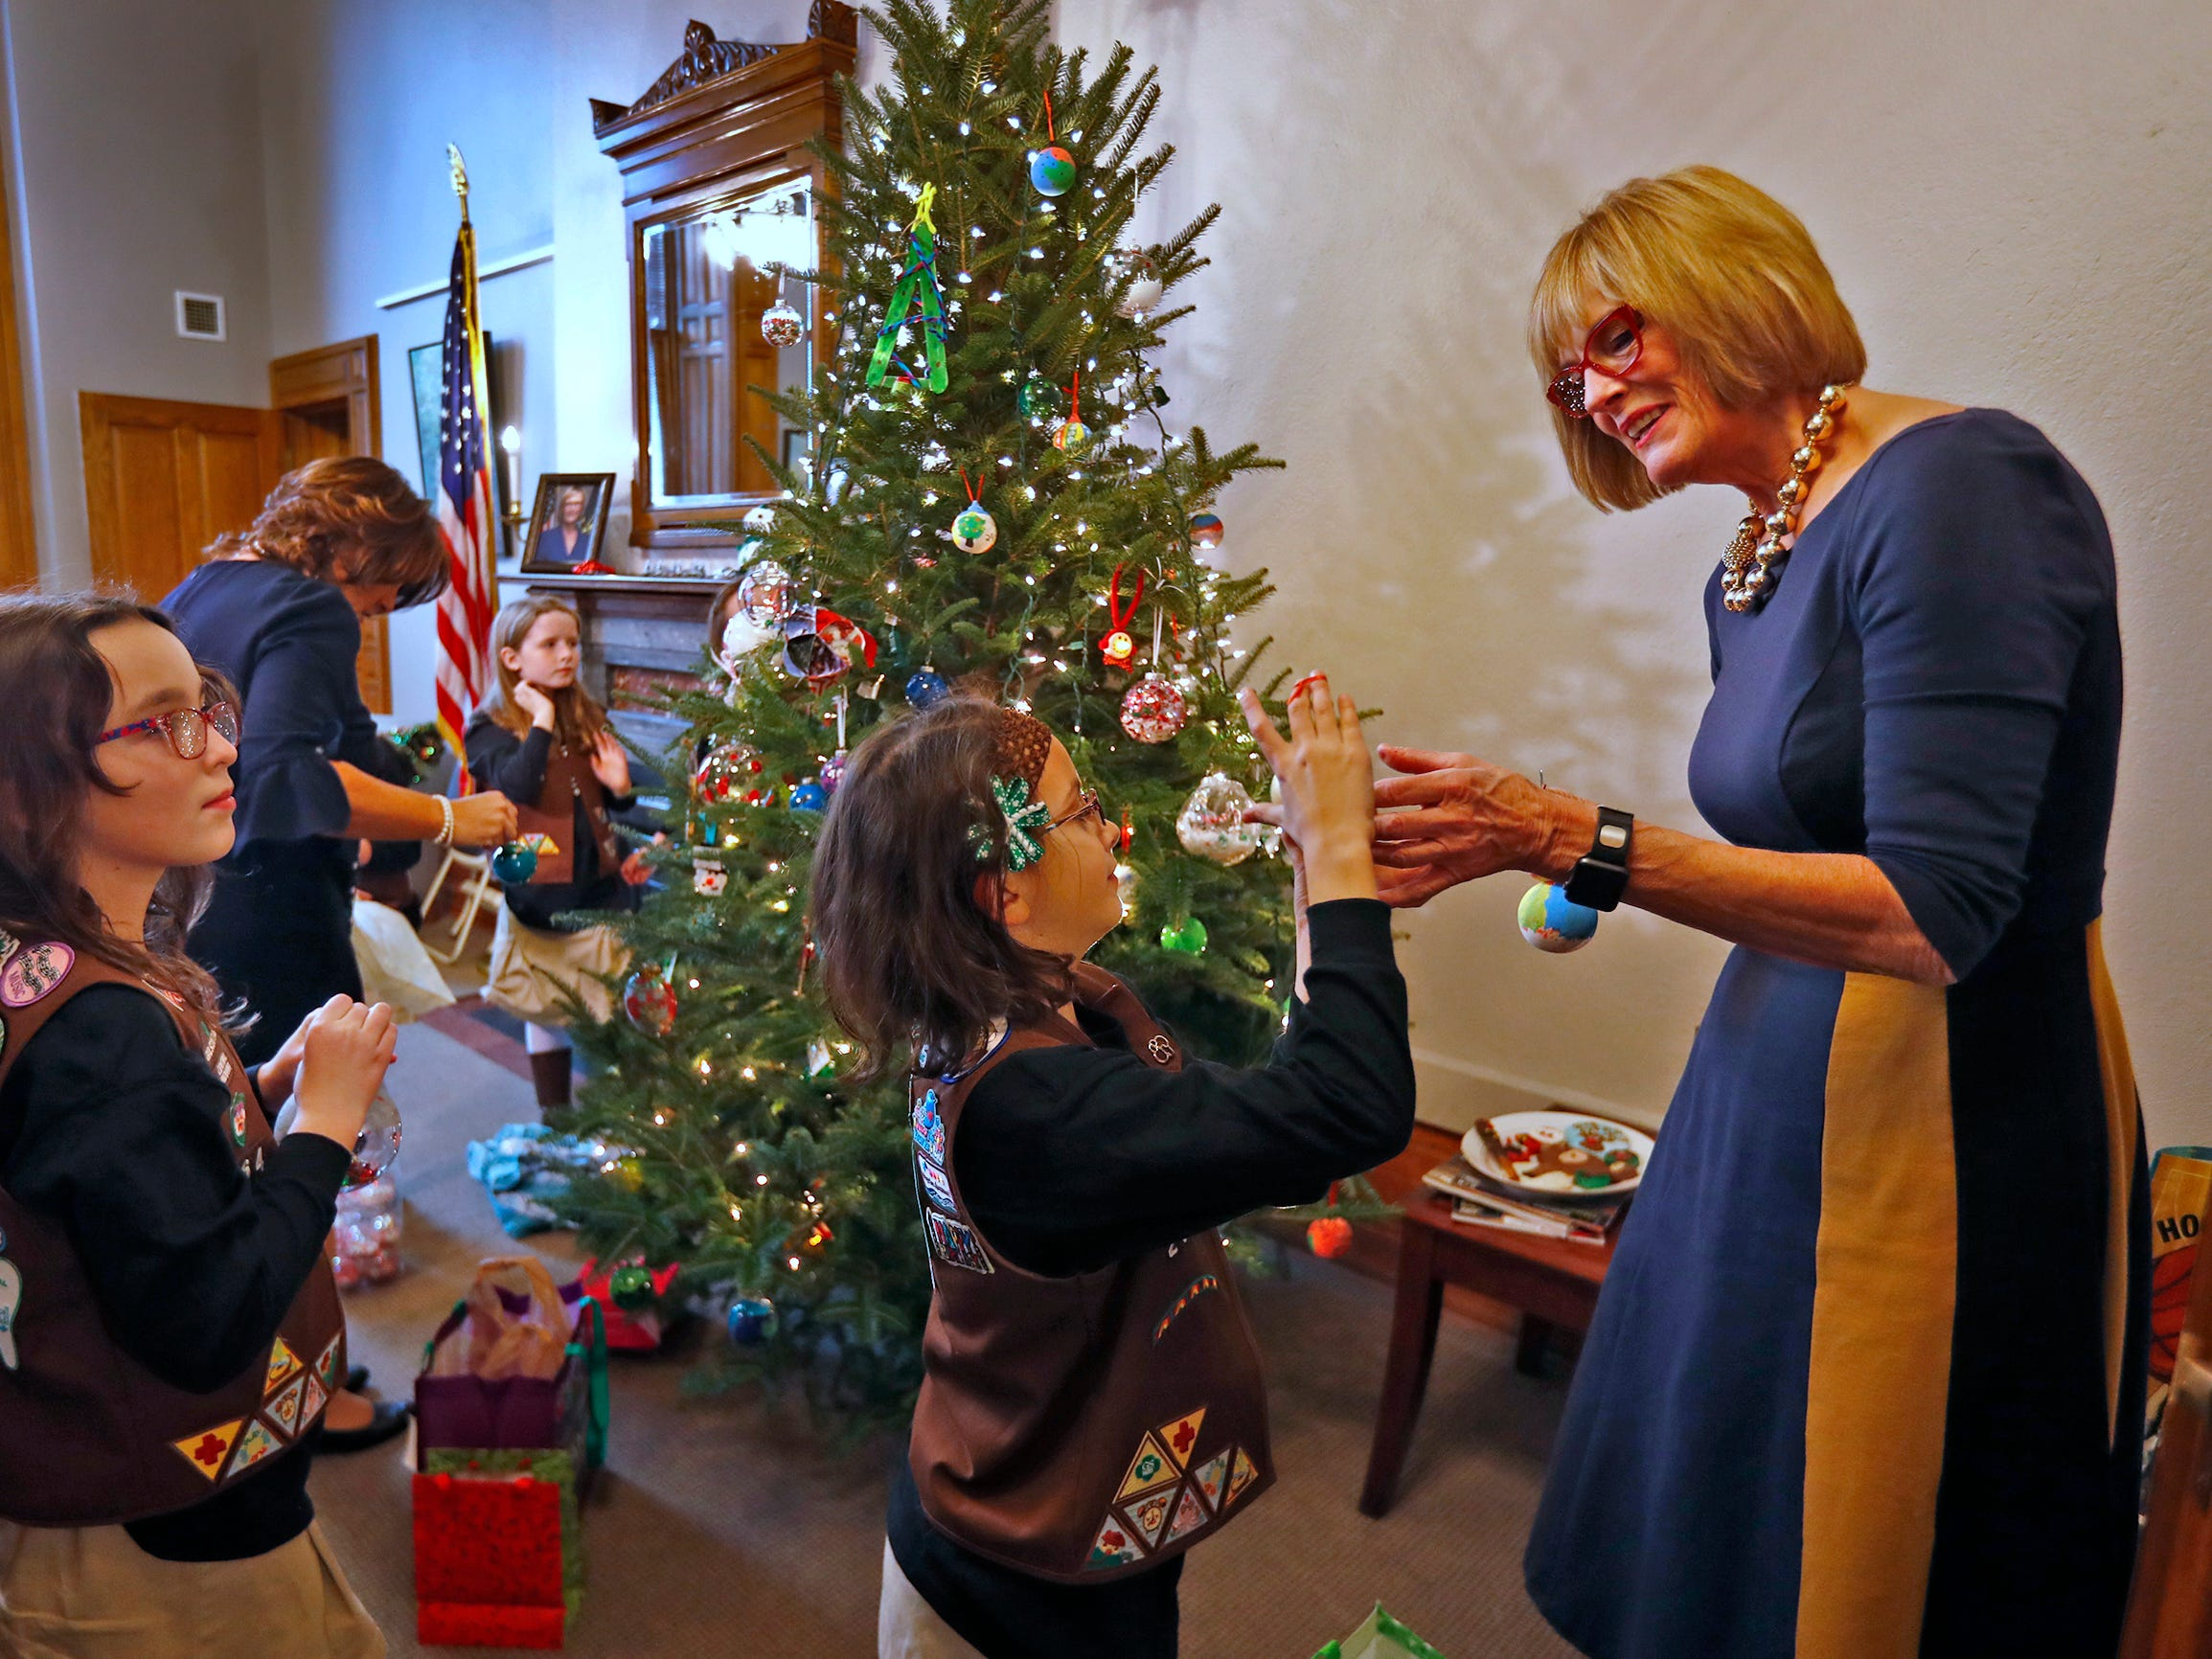 Josie Pardo, left, Ivy Lara, center, and other Brownies join Lieutenant Governor Suzanne Crouch to decorate her Indiana Statehouse tree for the holidays, Wednesday, Dec. 5, 2018.  They used ornaments created by Girl Scouts from across Central Indiana for the tree.